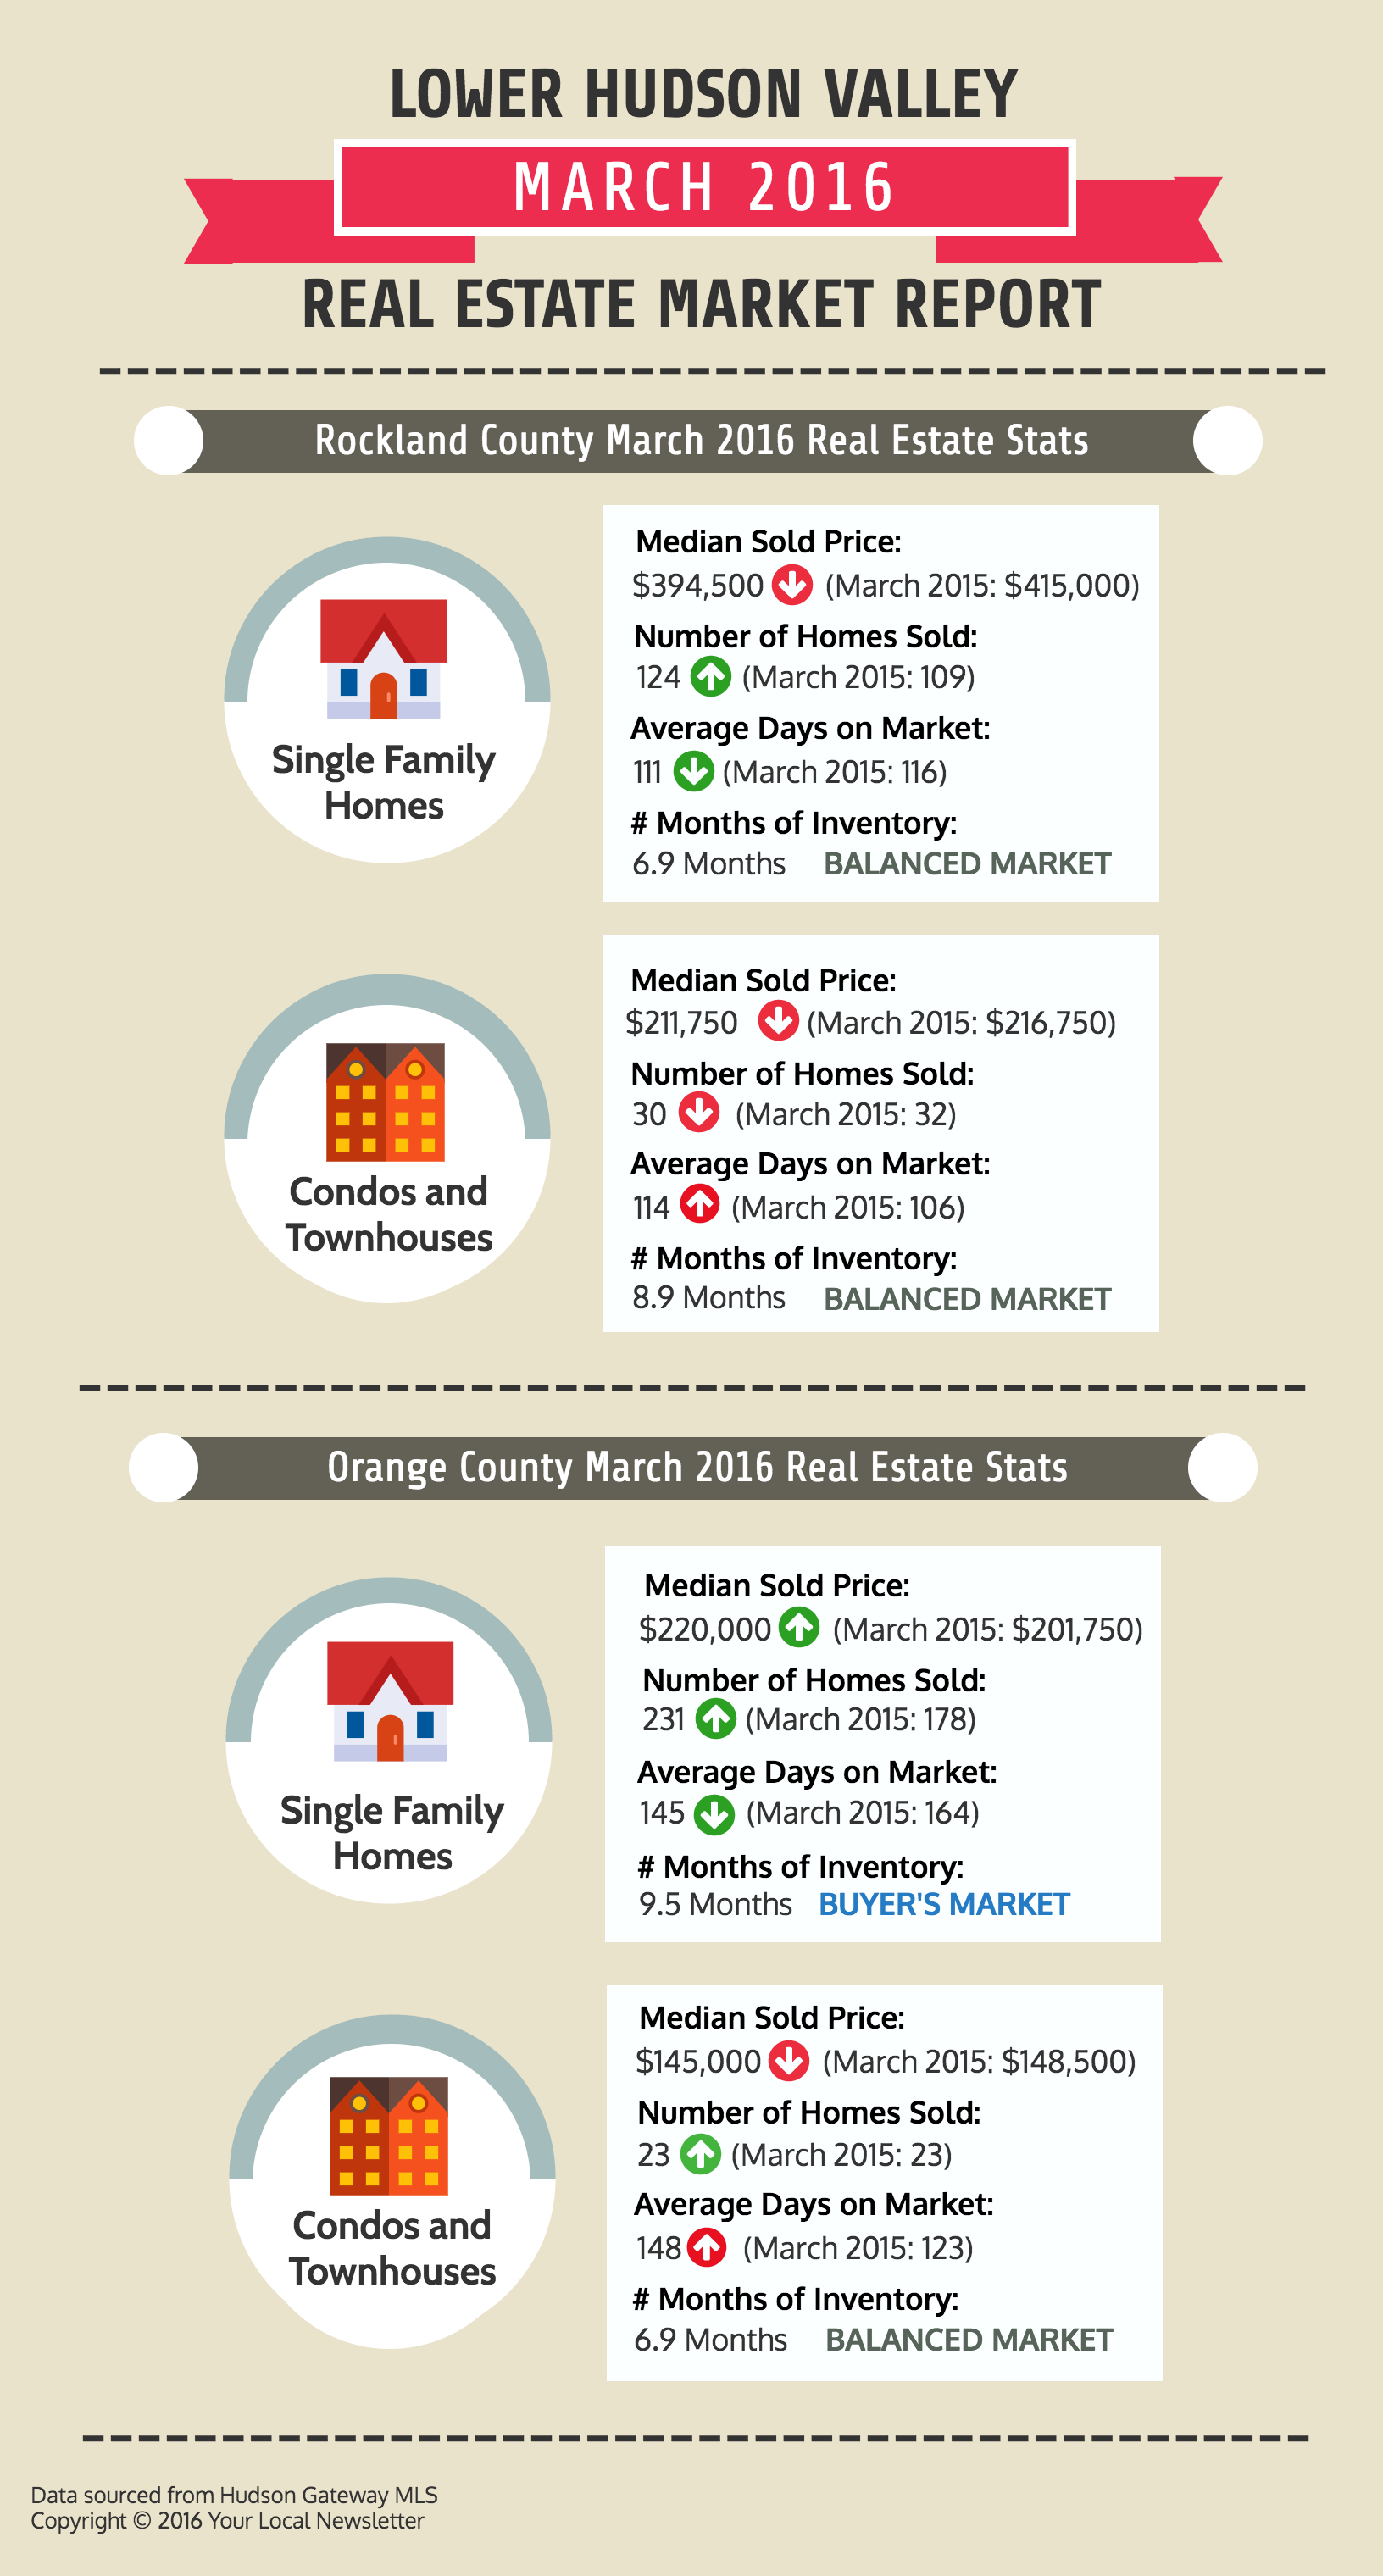 Westchester and Putnam County March 2016 Real Estate Trends